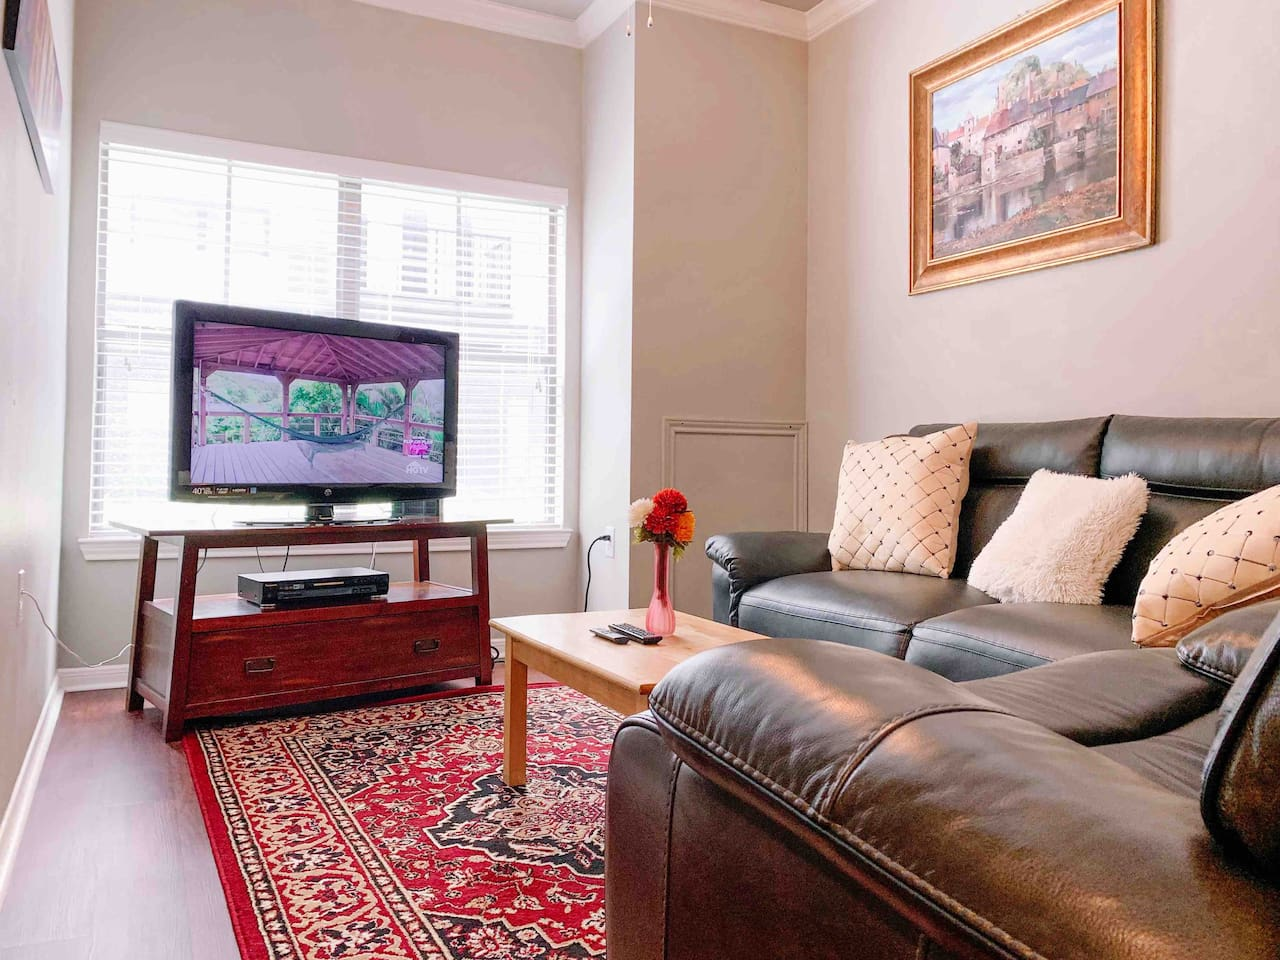 Living Room - Newly renovated & very spacious - Includes TV with Netflix, AmazonTV, live TV available through Sling TV App. New full-size comfy leather couch, sofa chair, & high speed 50mbps Wifi.